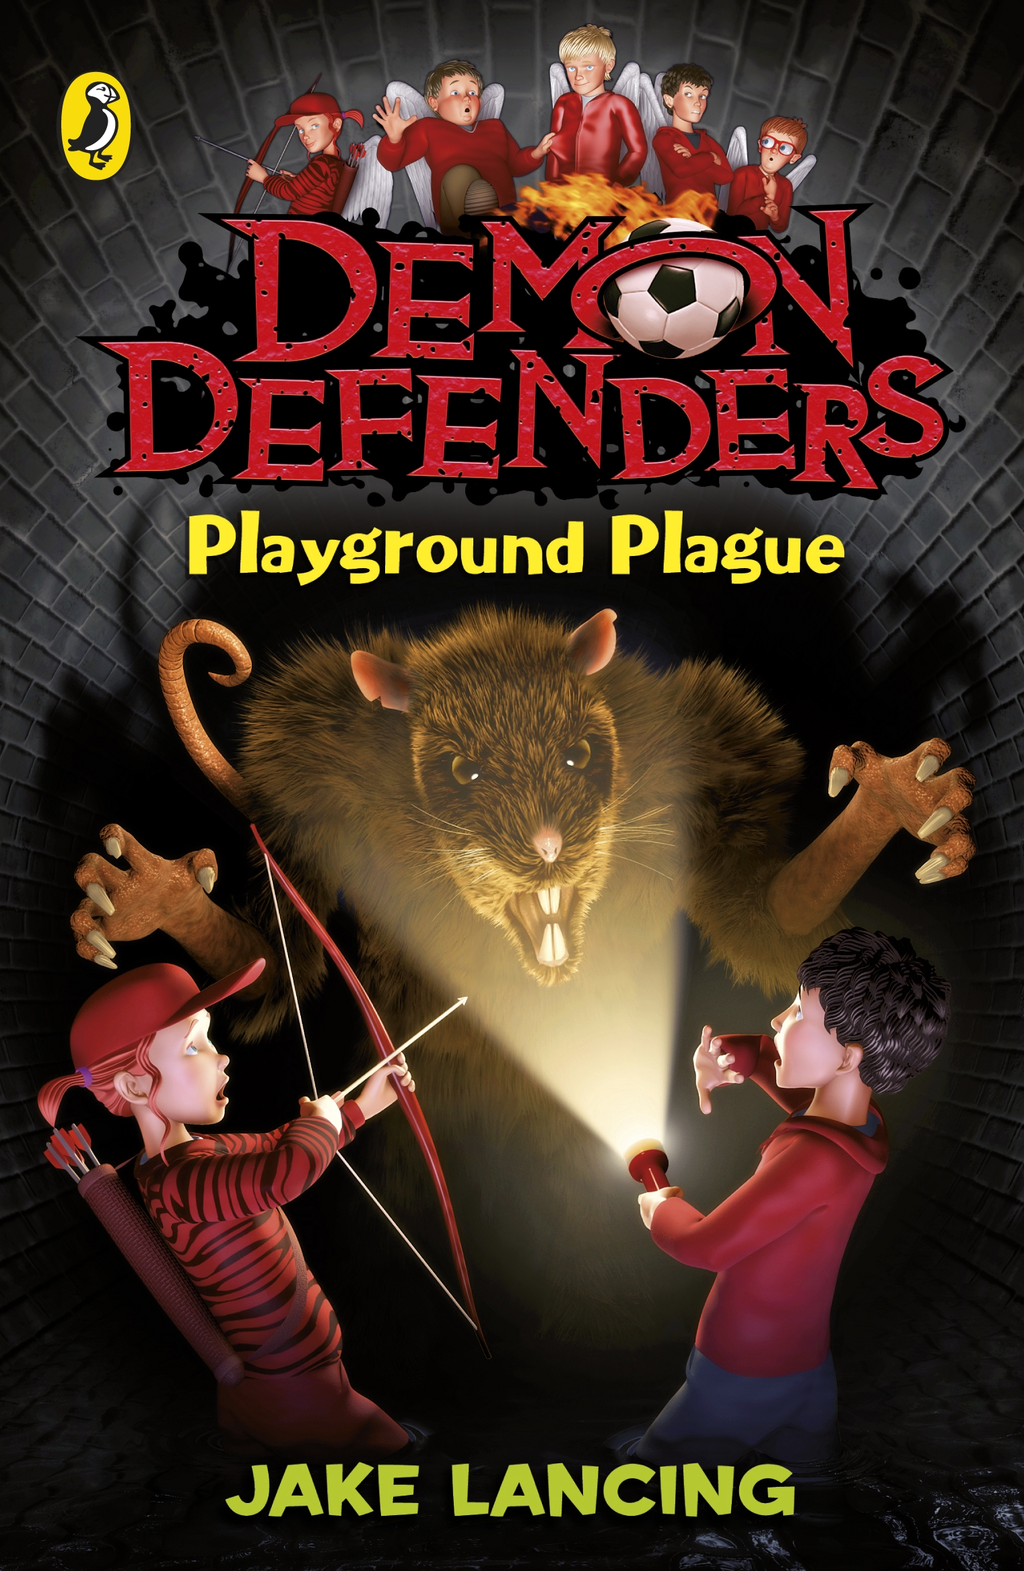 Demon Defenders: Playground Plague